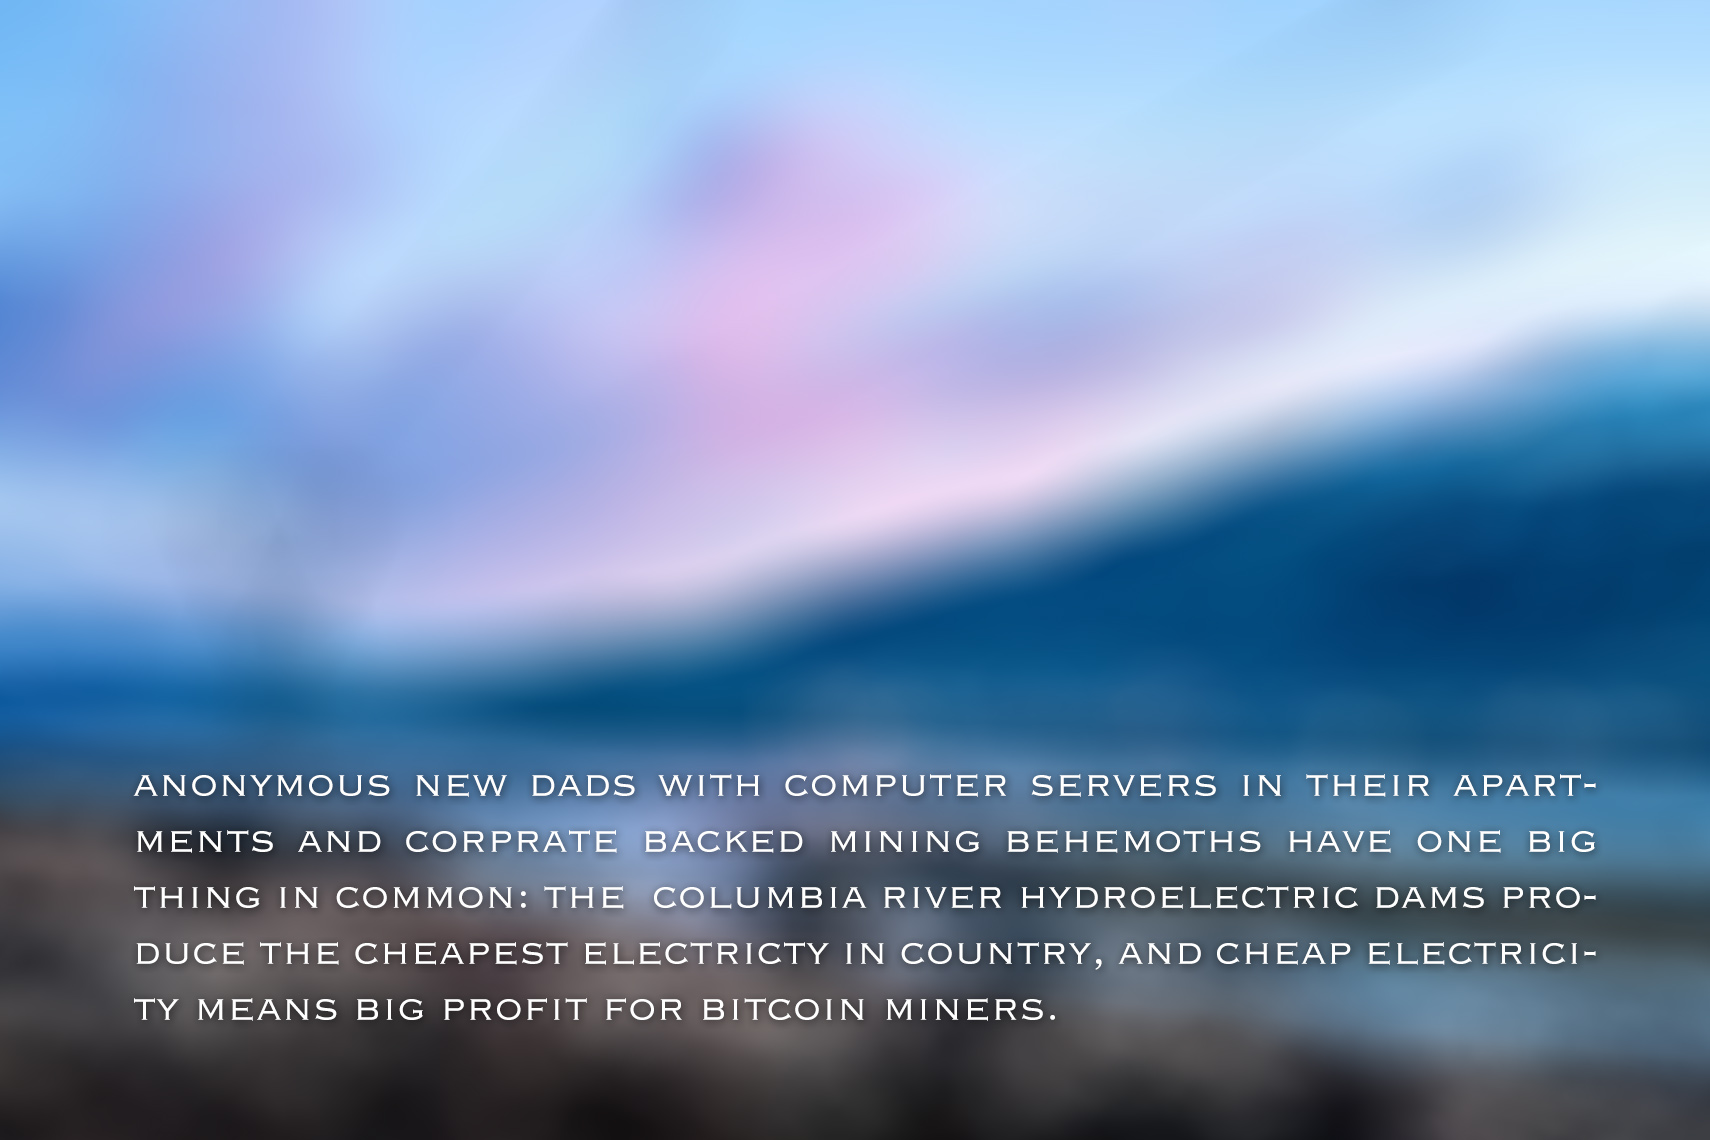 patrick_cavan_brown_bitcoin_mining_wenatchee_washington-6311COVER